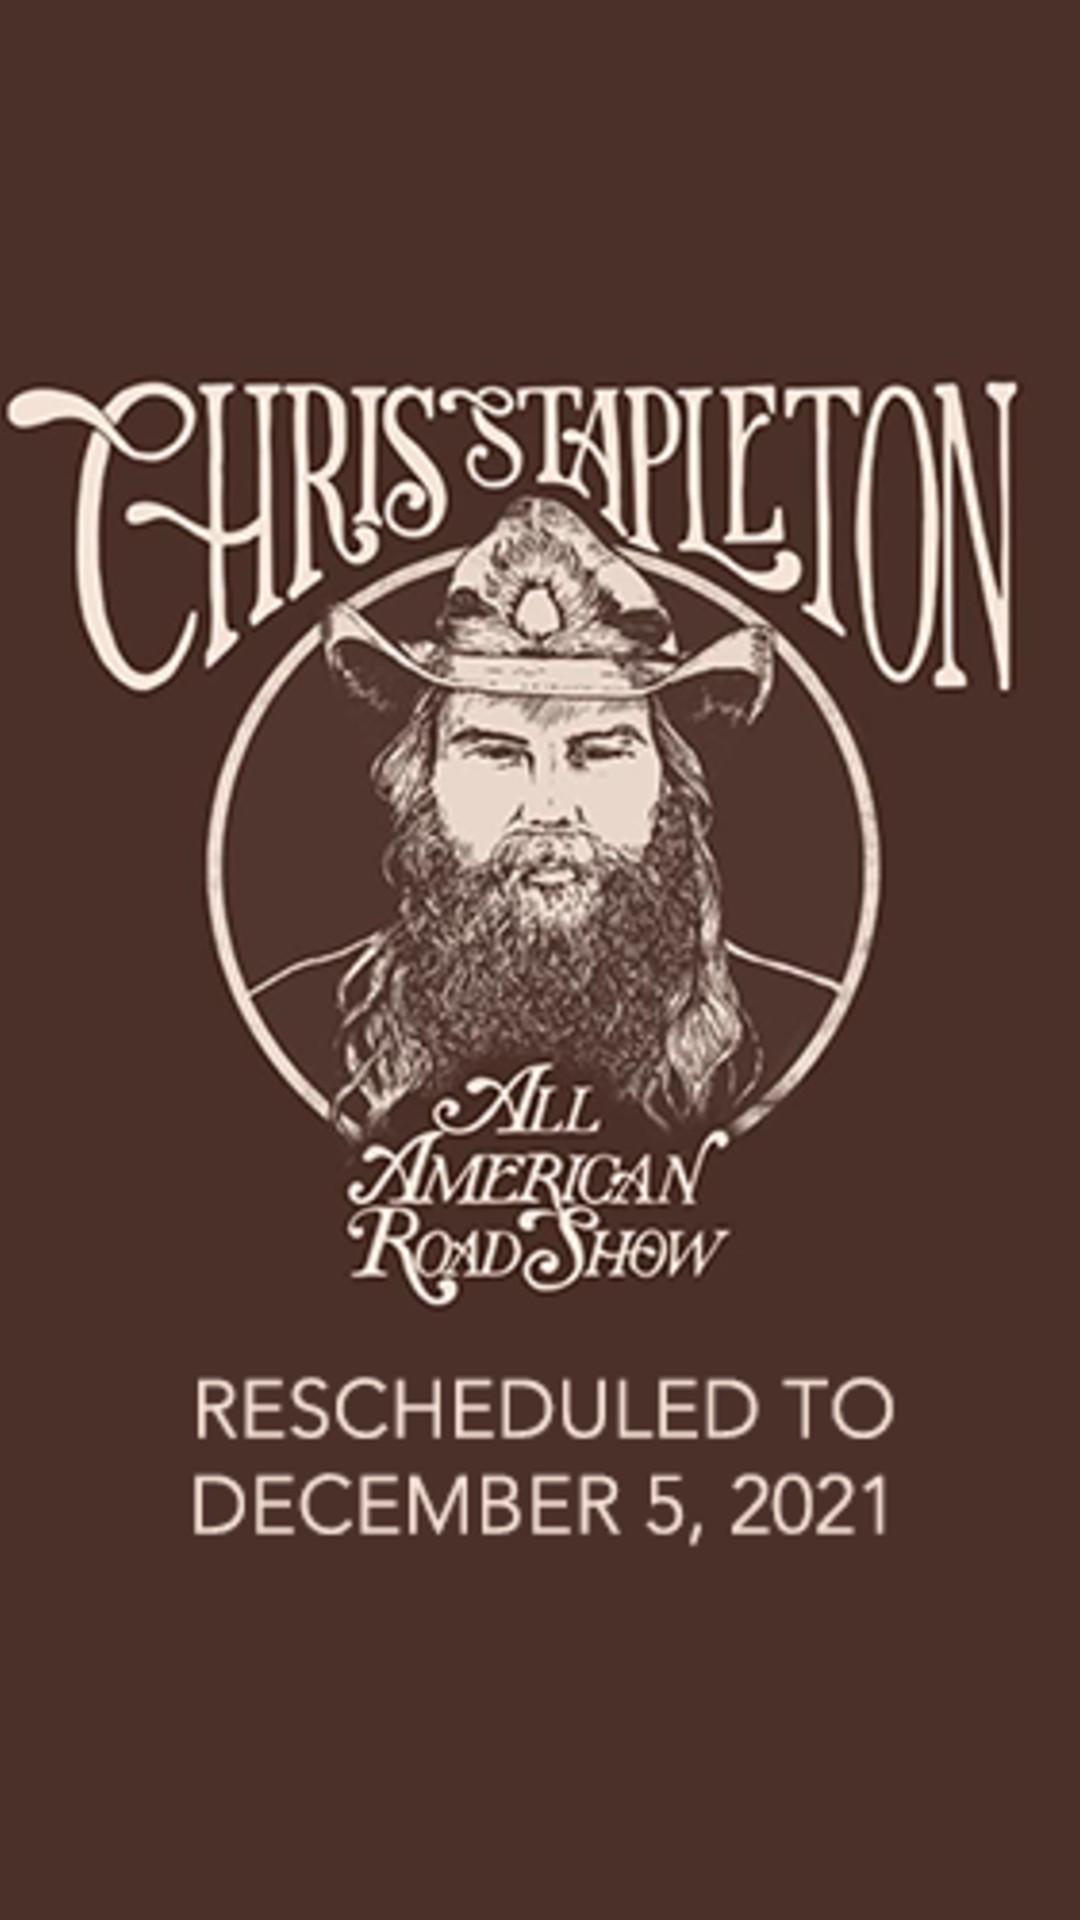 Dec 5th, Chris Stapleton @ Thompson Boling Arena